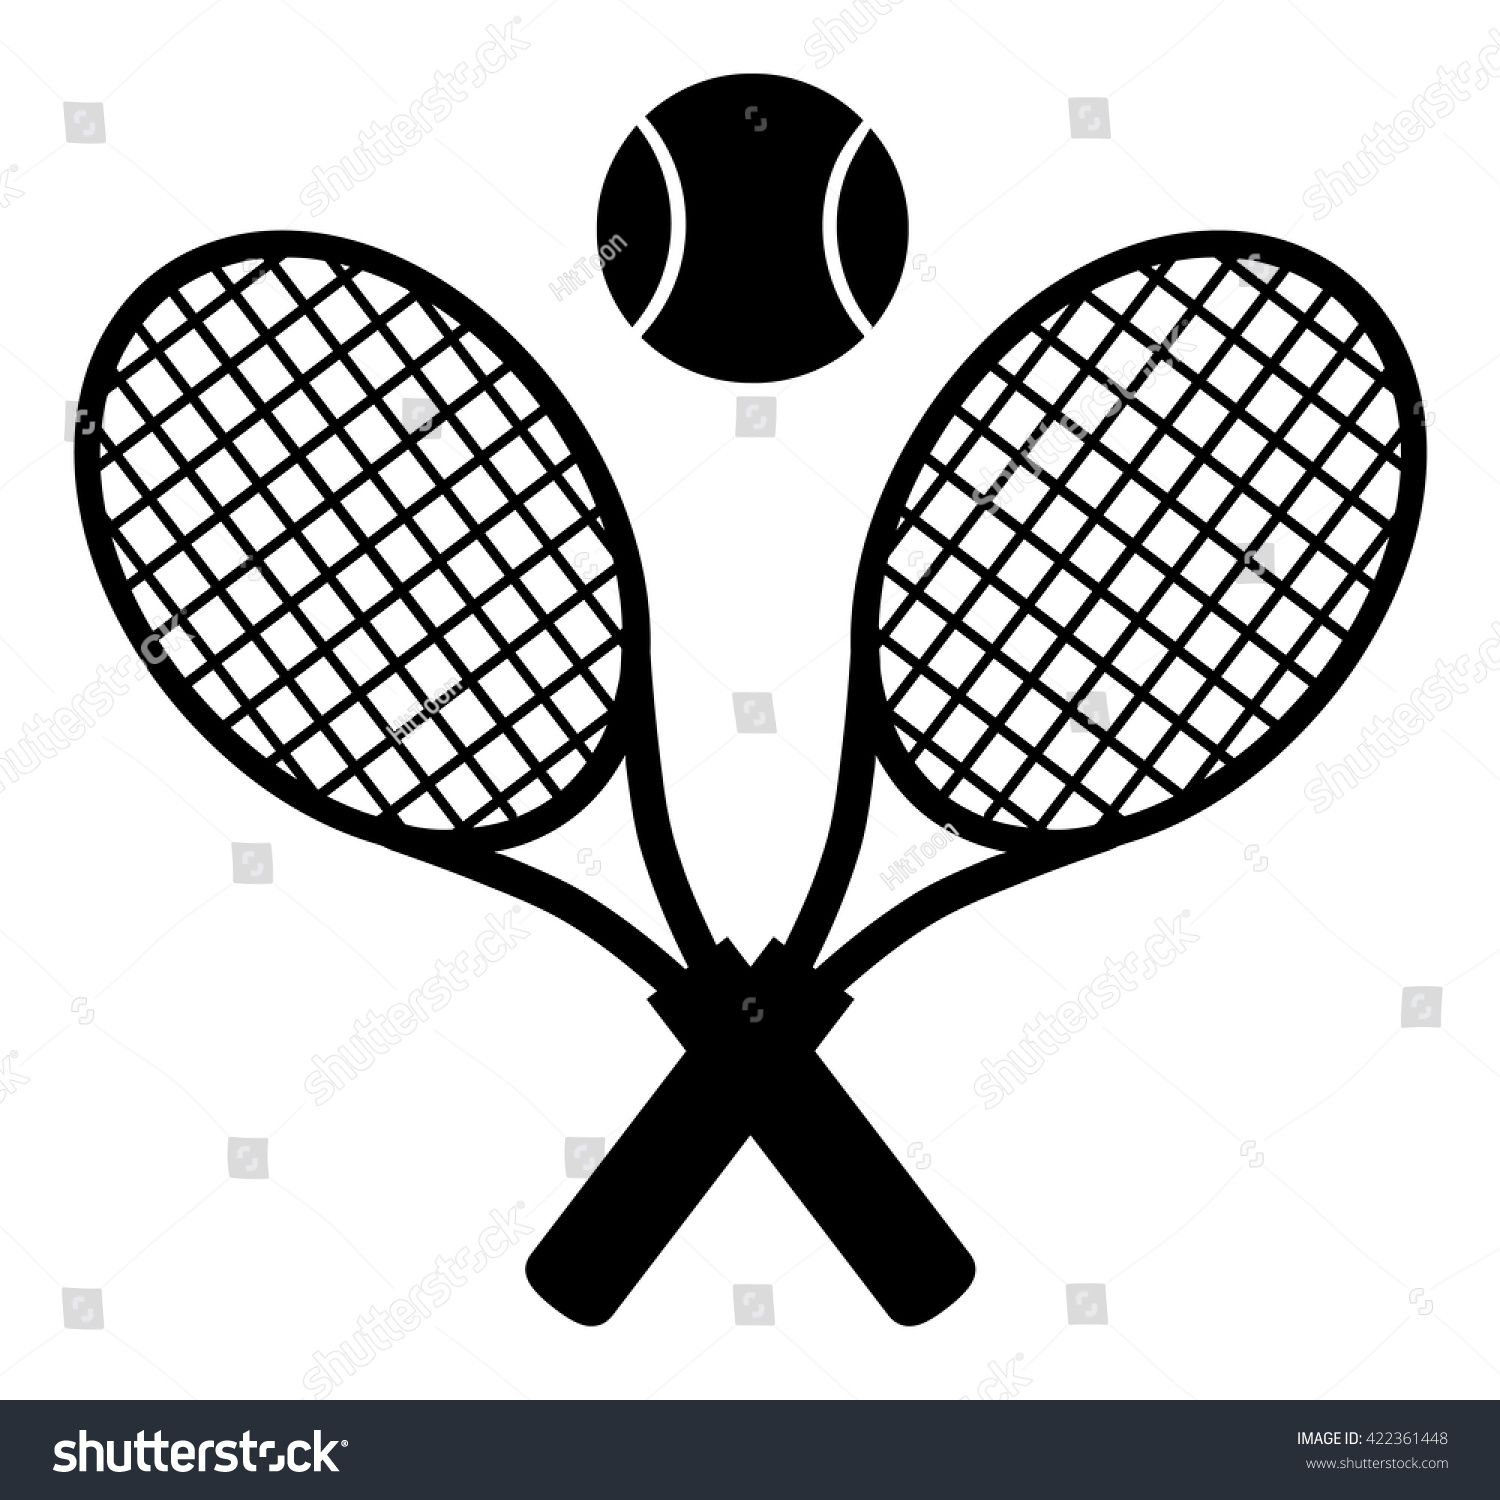 Crossed Racket And Tennis Ball Black Silhouette. Vector.